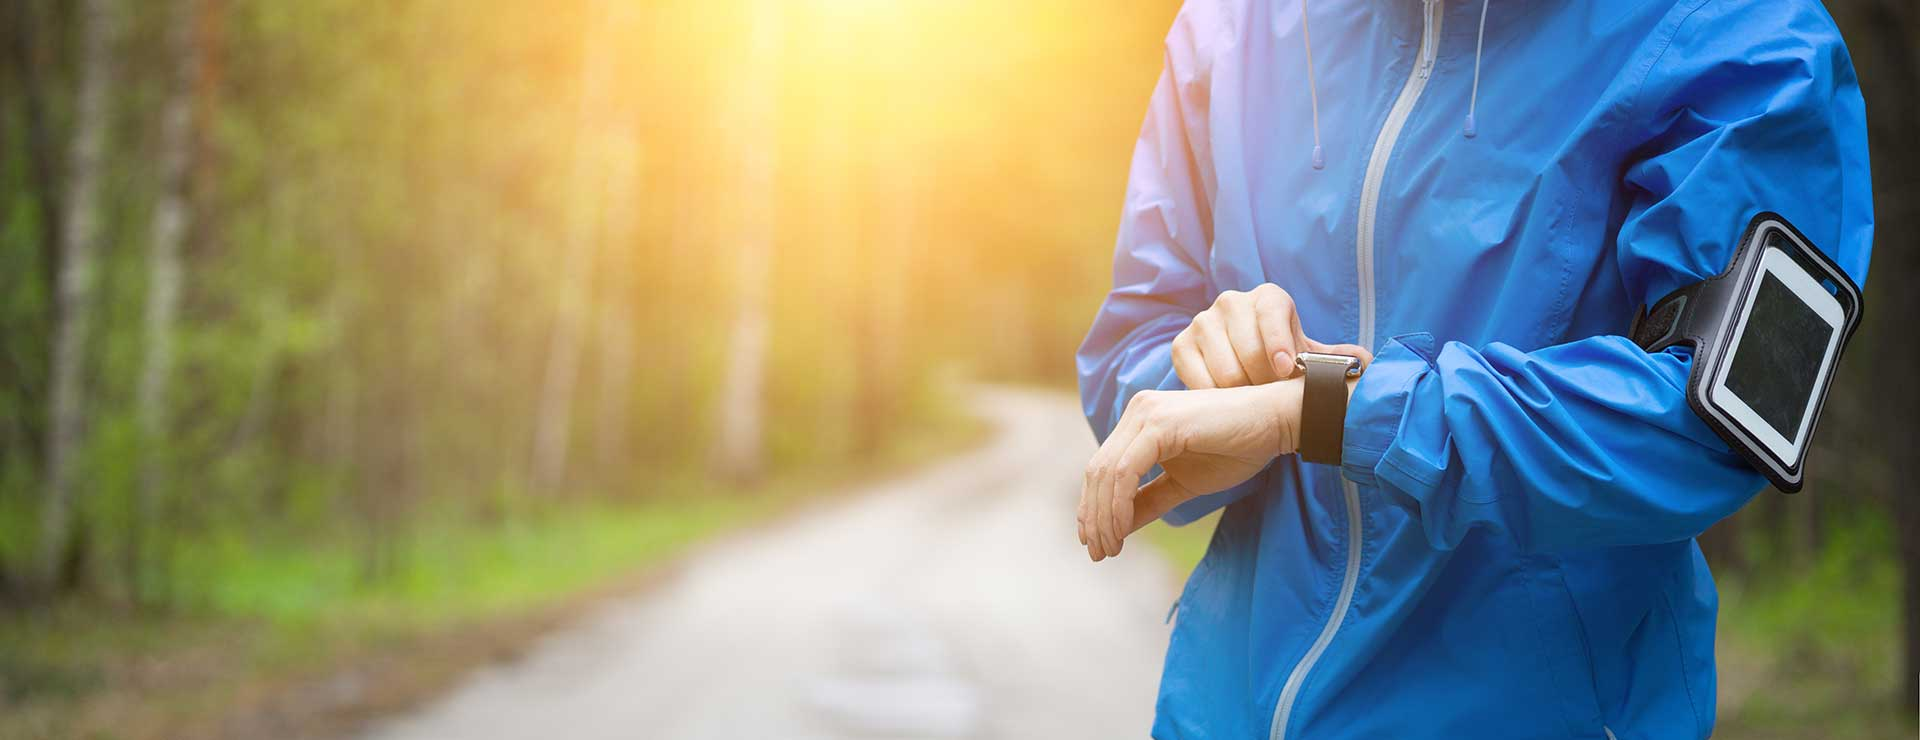 Woman on a running trail checks fitness tracker